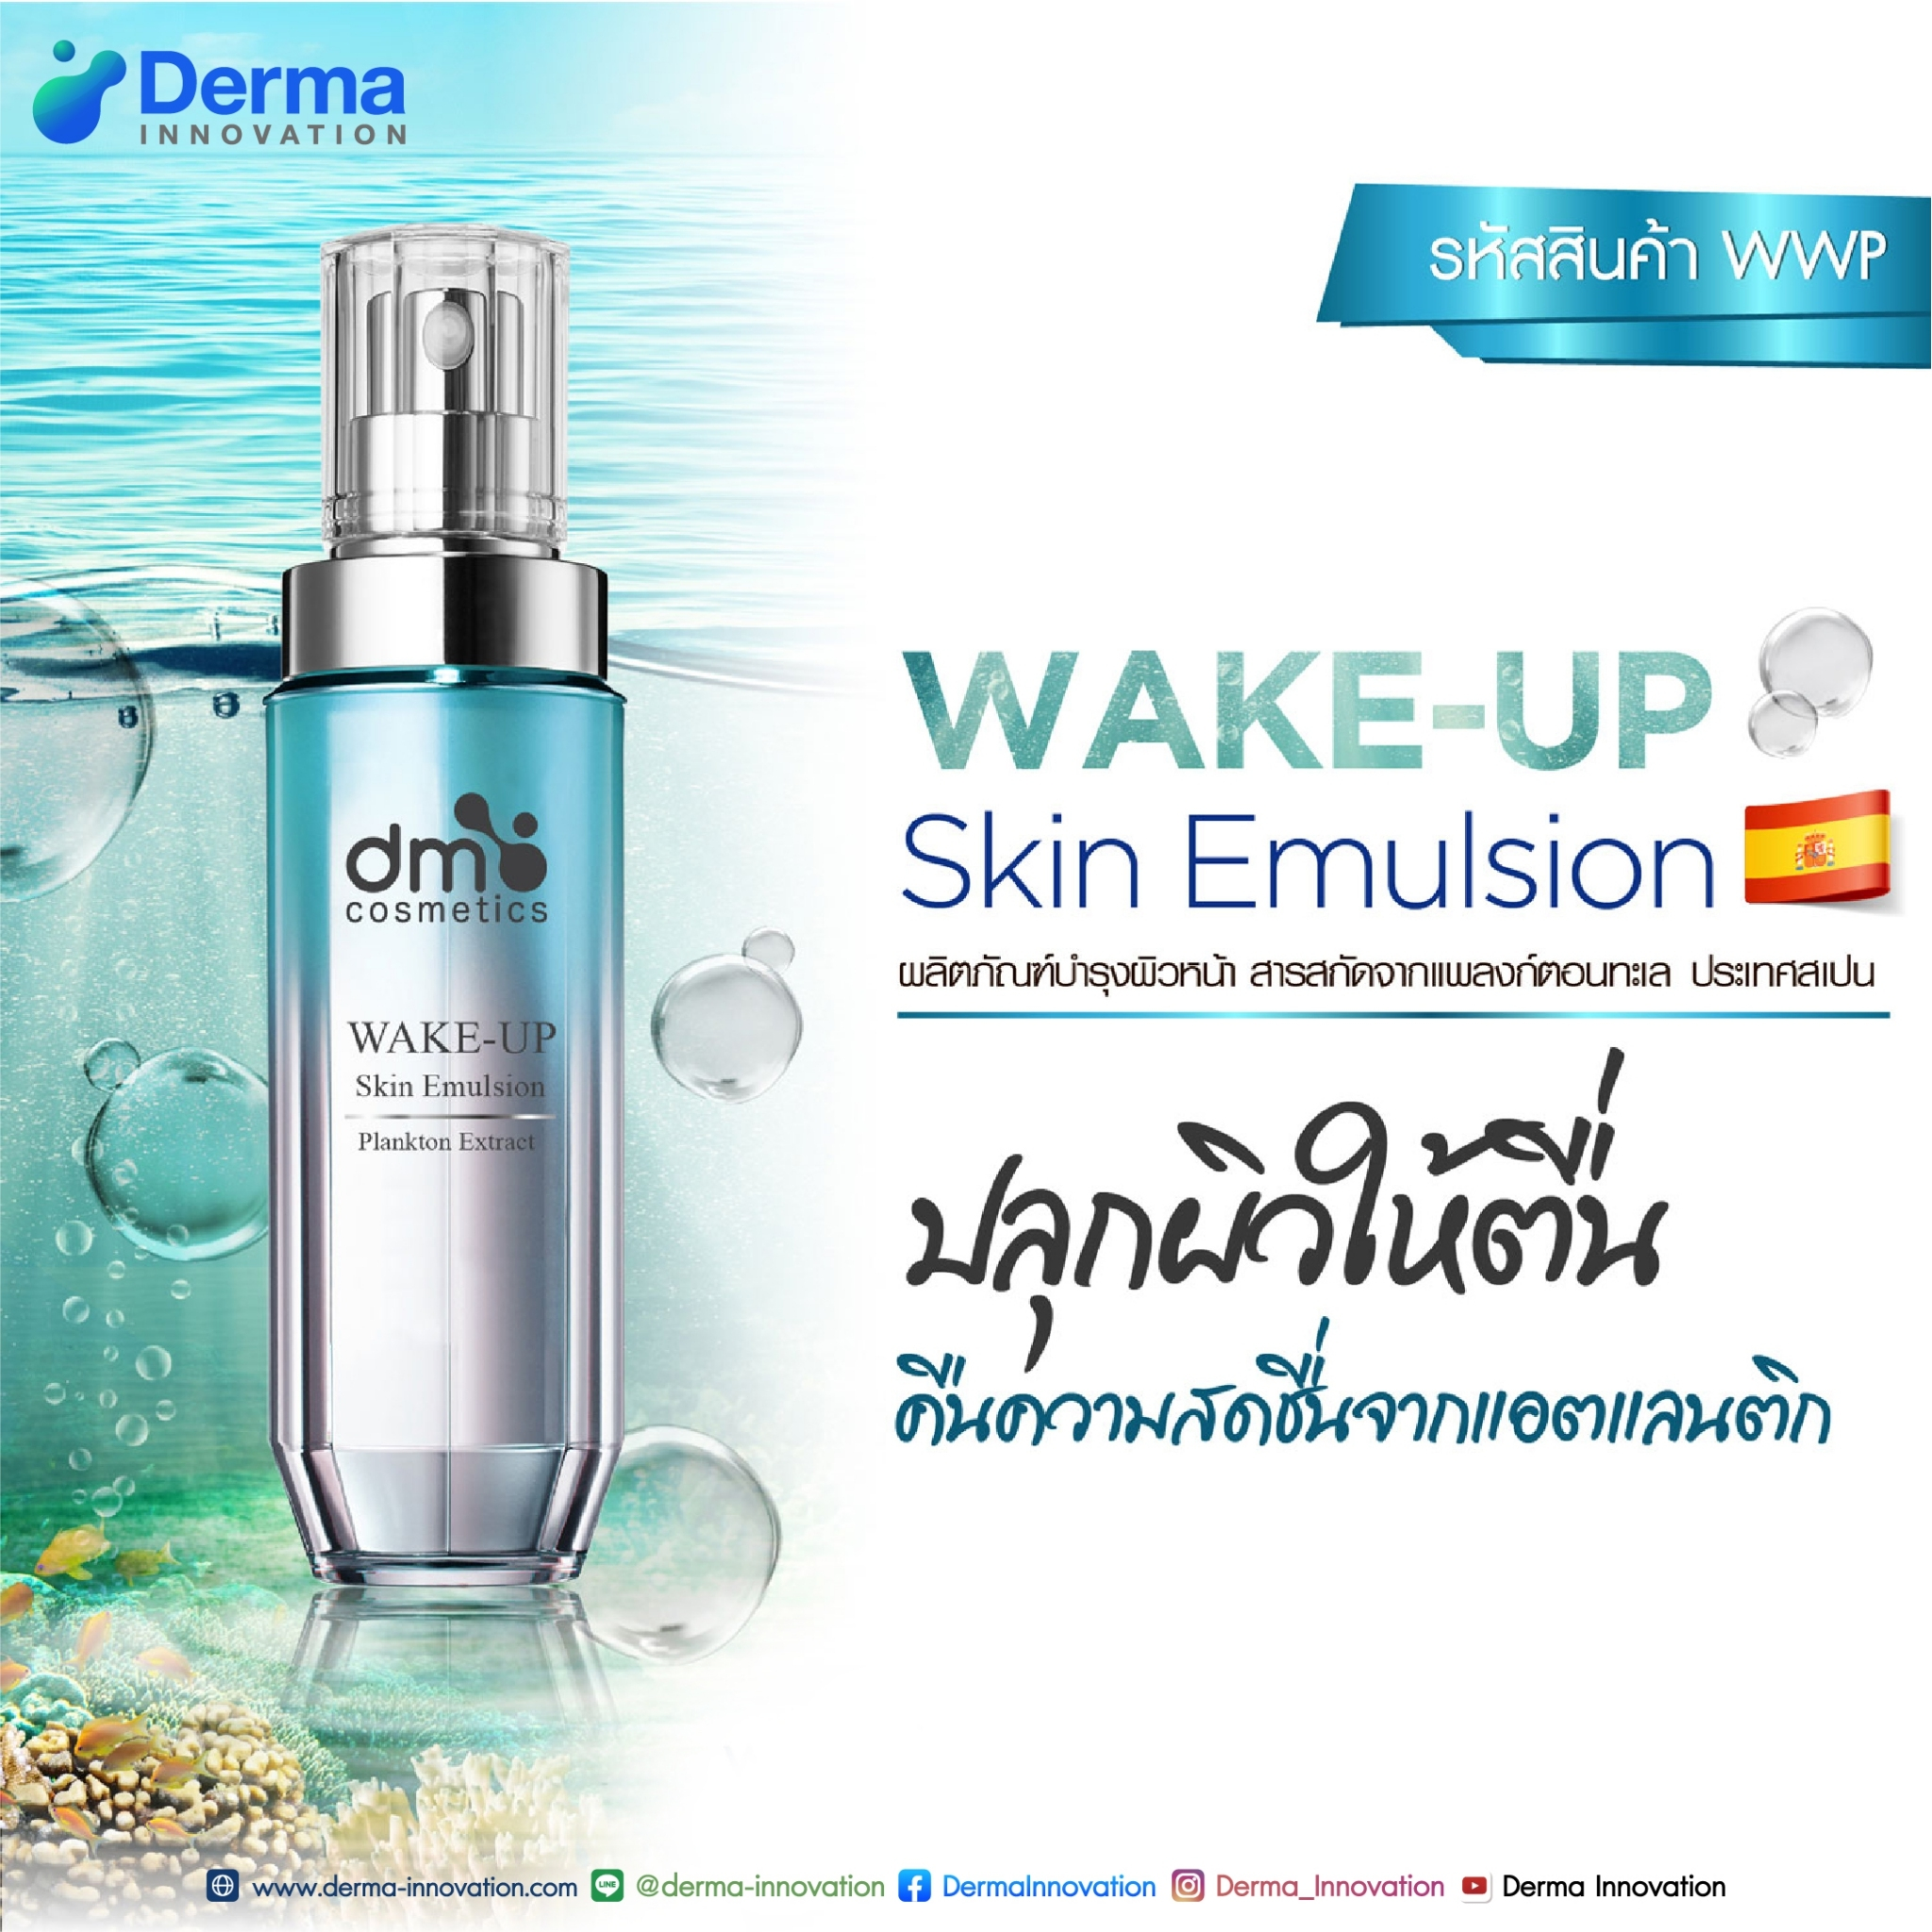 Wake-Up Skin Emulsion